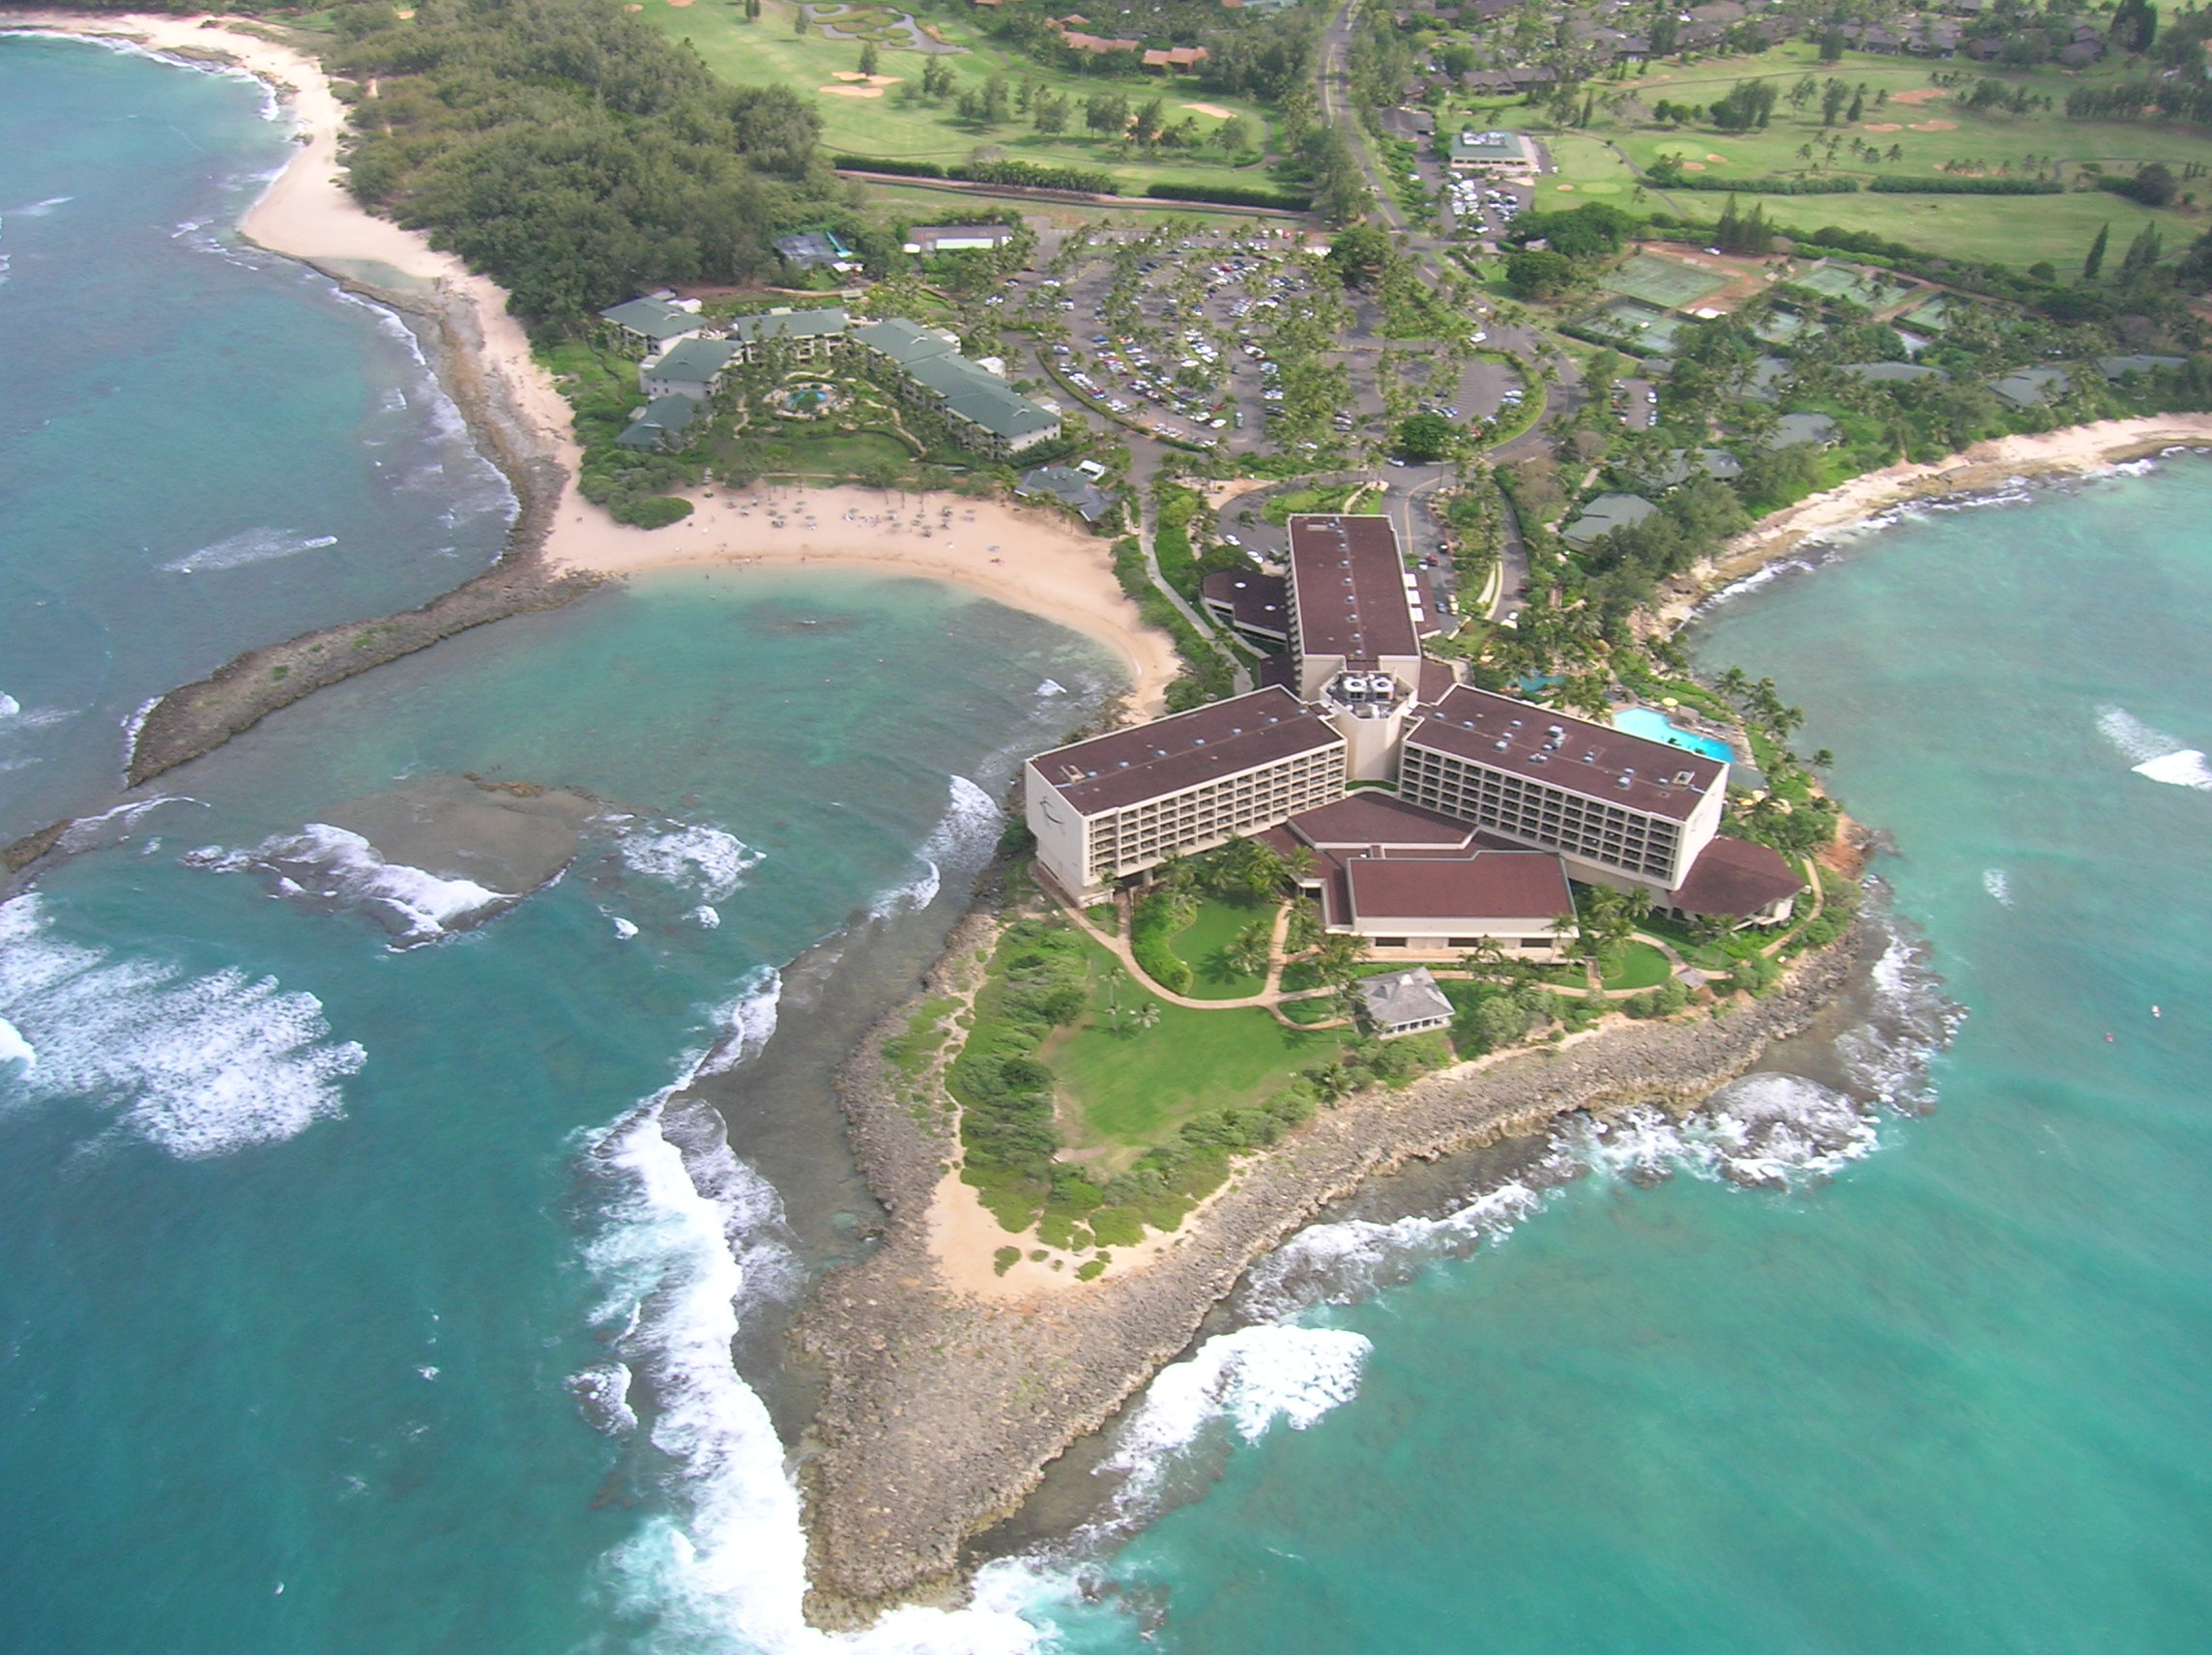 File:Turtle bay resort.jpg - Wikipedia, the free encyclopedia